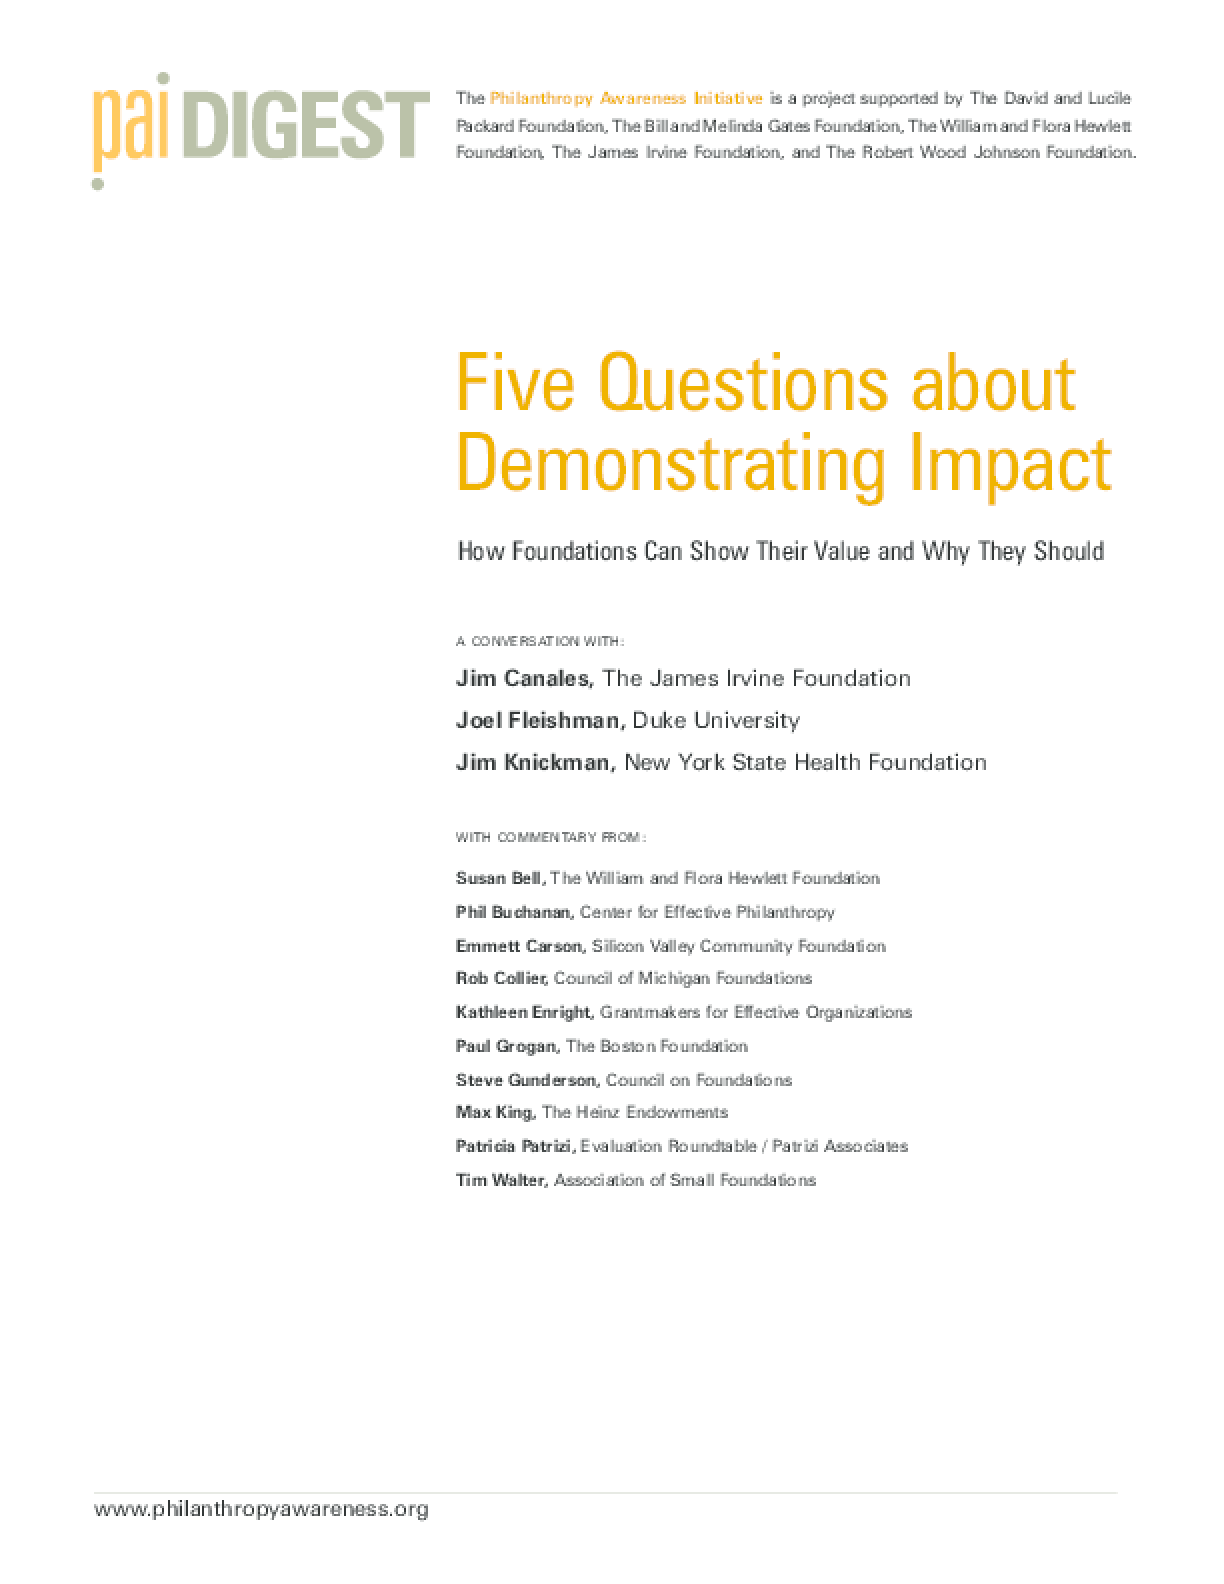 Five Questions about Demonstrating Impact